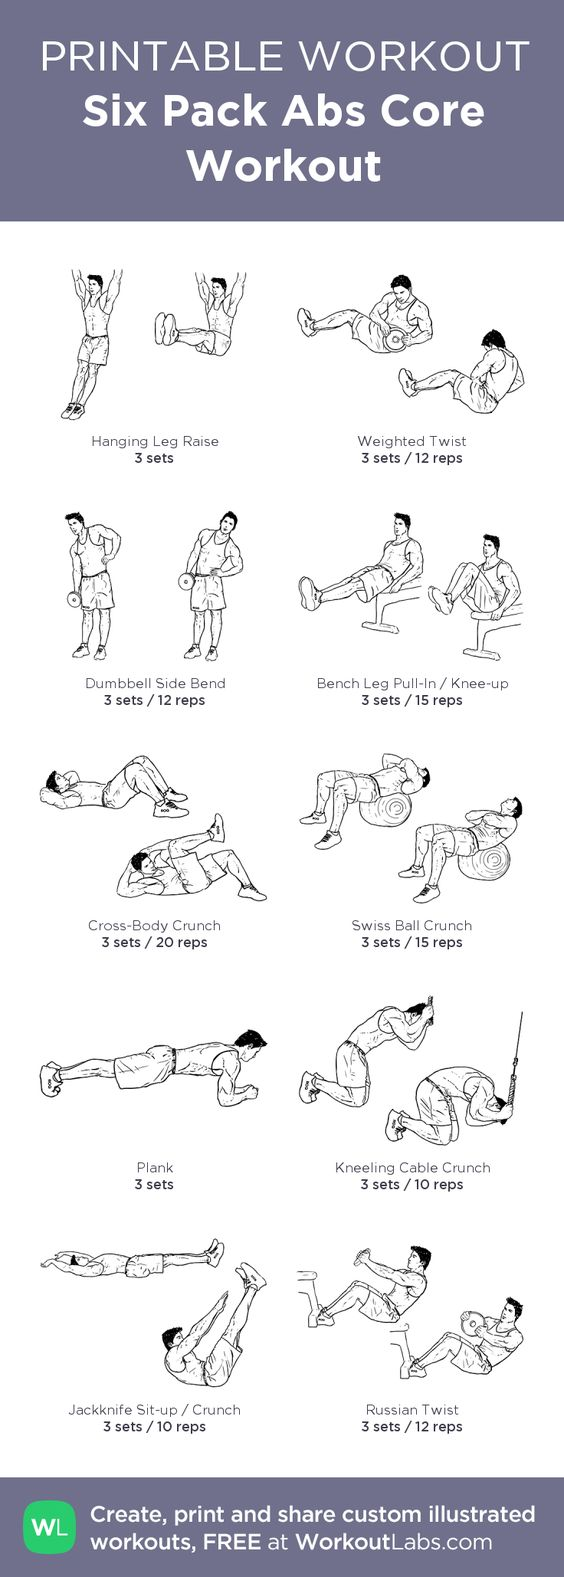 Printable Workout: Six Pack Abs Core Workout